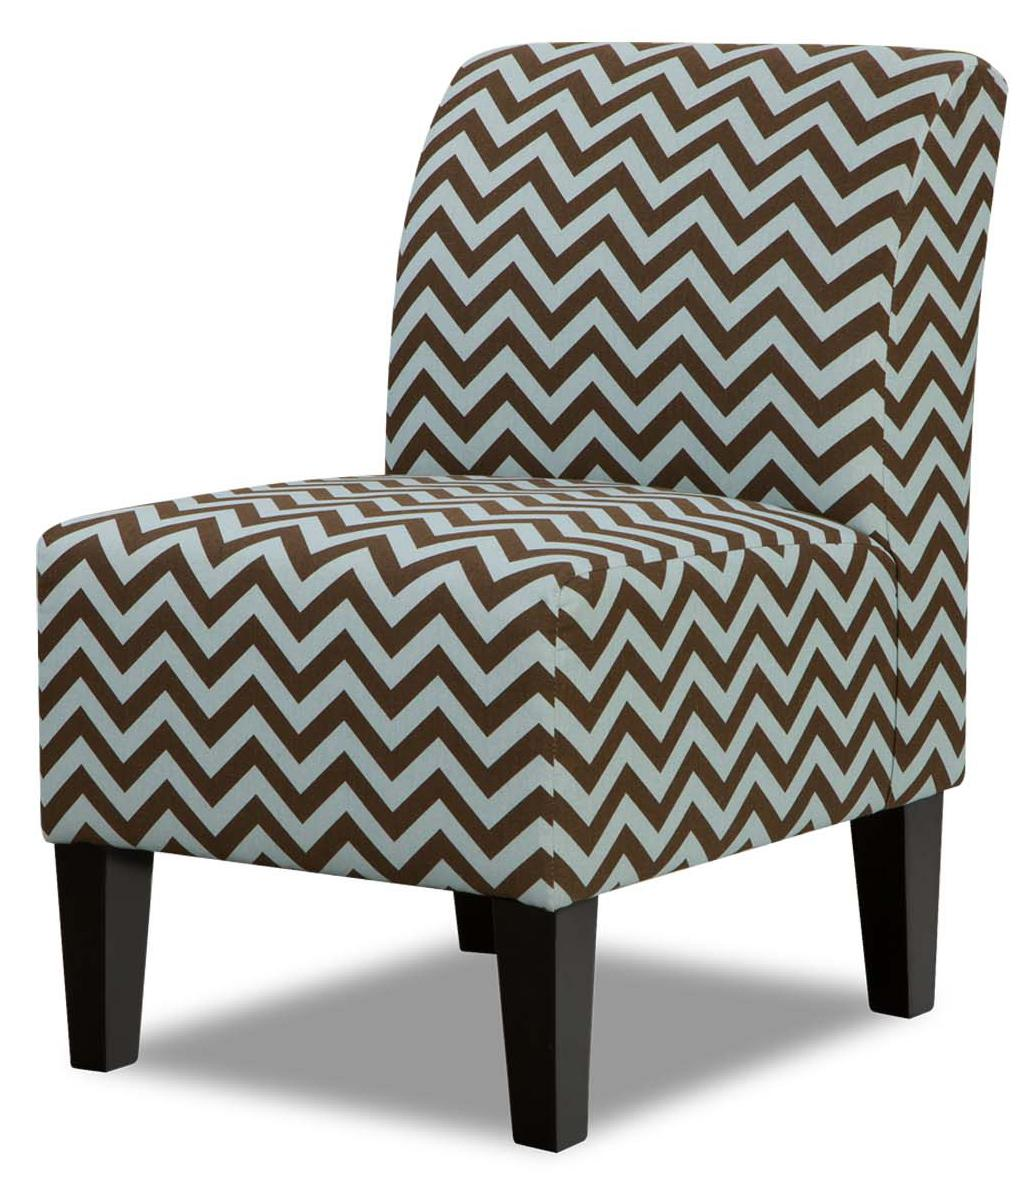 Simmons Upholstery 3028 Accent Chair   Item Number: 3028 Accent Chair  Chevron